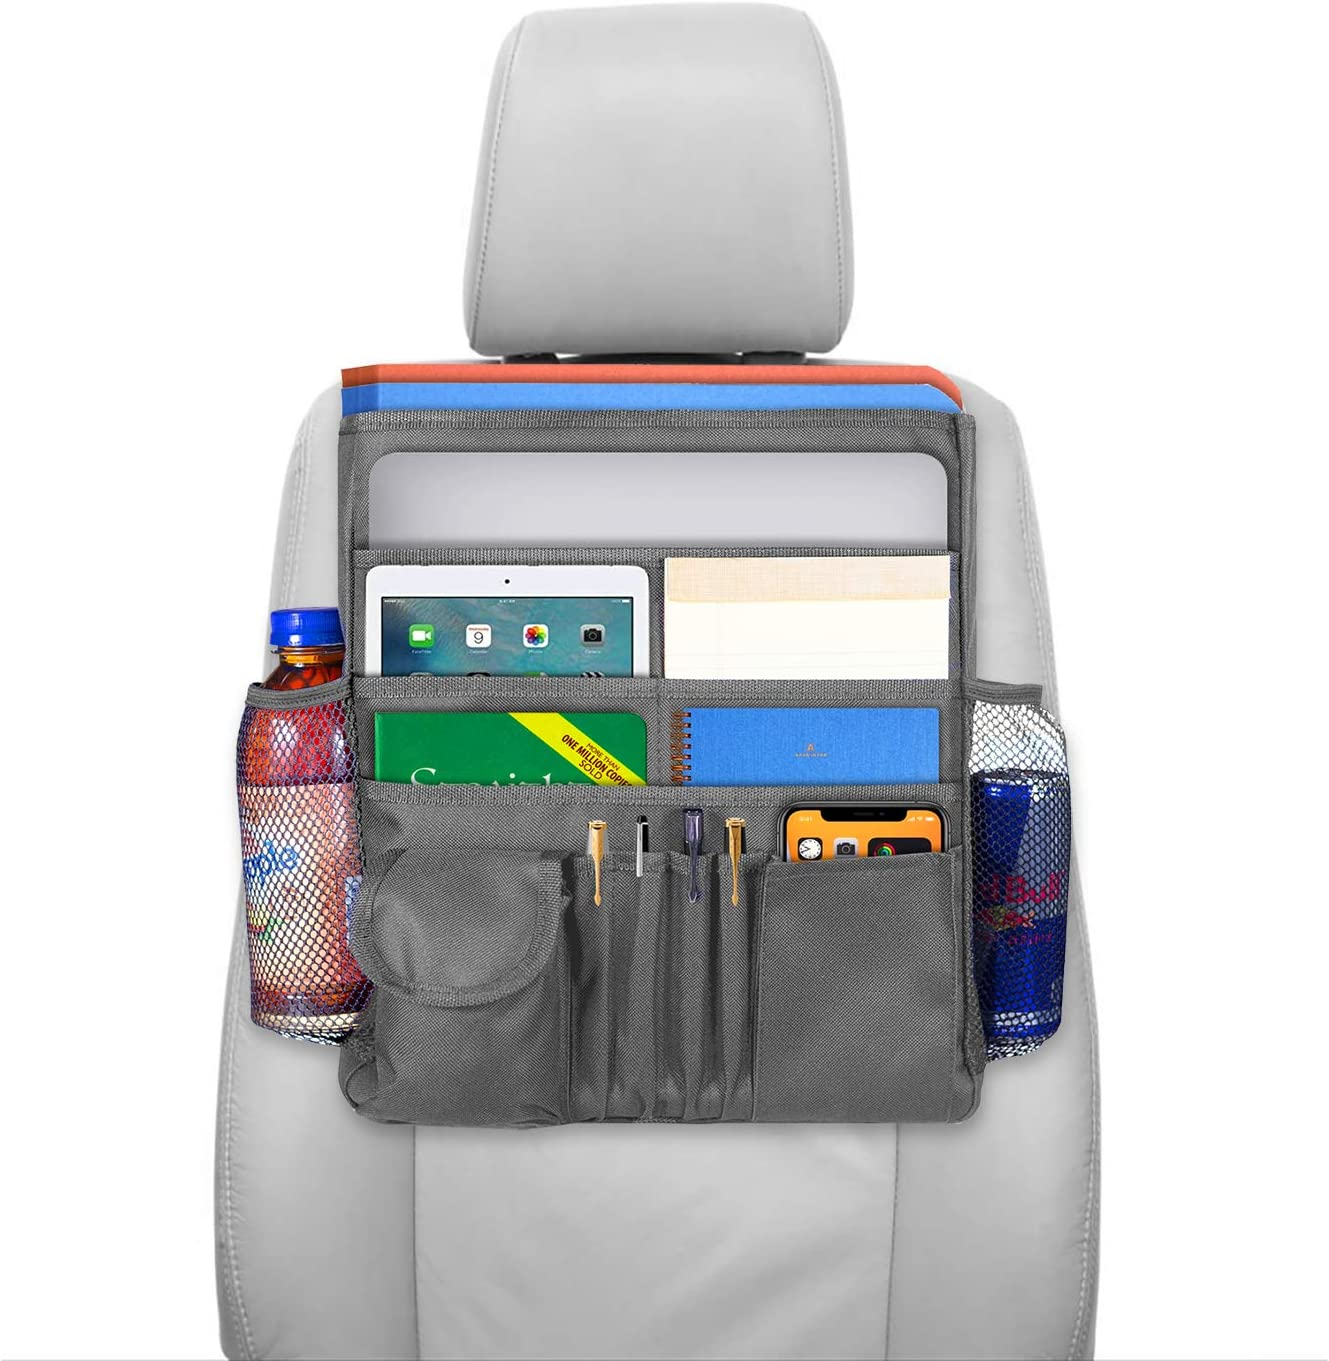 Headrest Storage Bag for Binders and Supplies Travel Accessories Tote Bag with Multiple Large Pockets A Closable Flap and A Shoulder Strap Mobile Office Bag Grey lebogner Front Seat Organizer